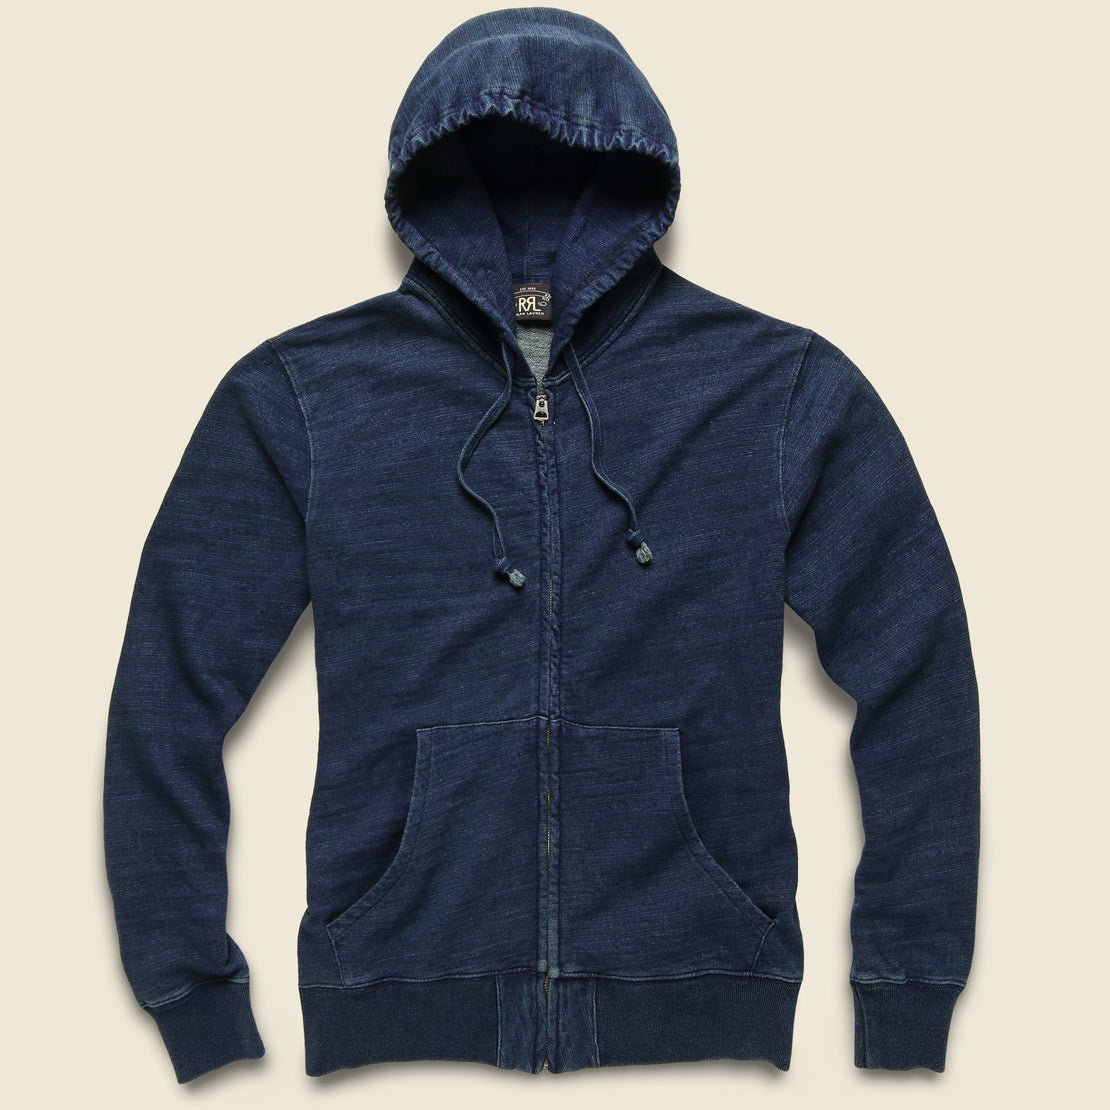 RRL French Terry Zip Hoodie - Washed Indigo